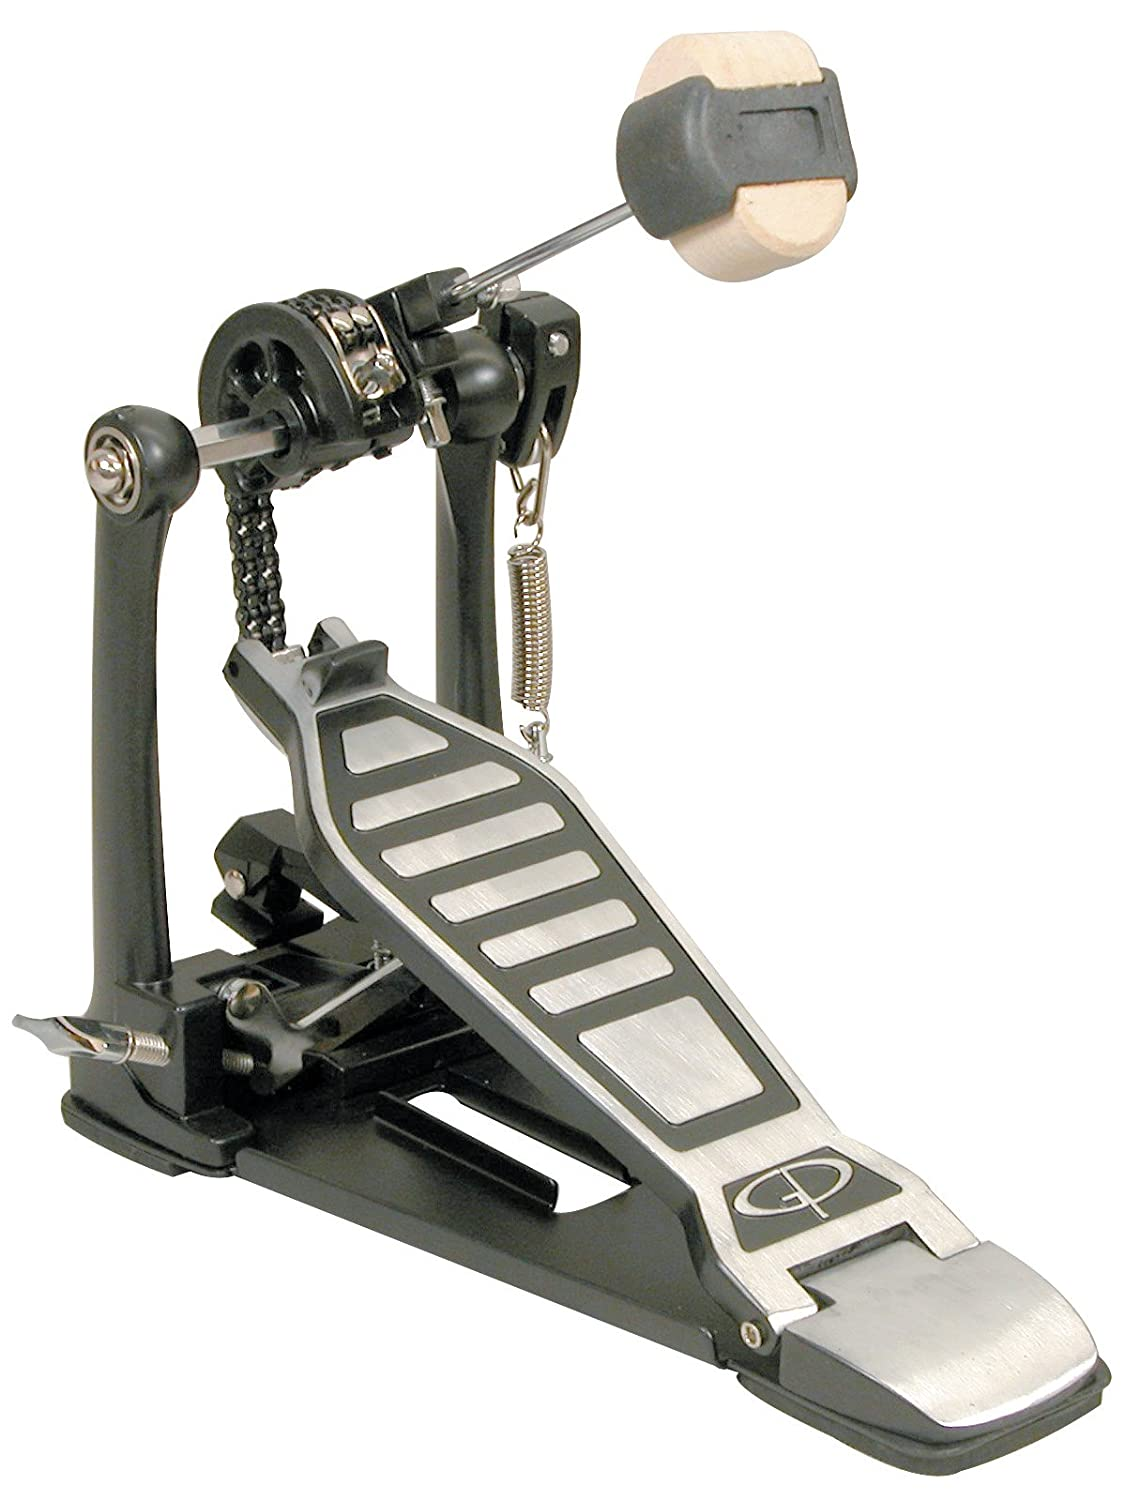 GP Percussion D719 Heavy-Duty Pro Quality Drum Pedal M & M Merchandisers Inc